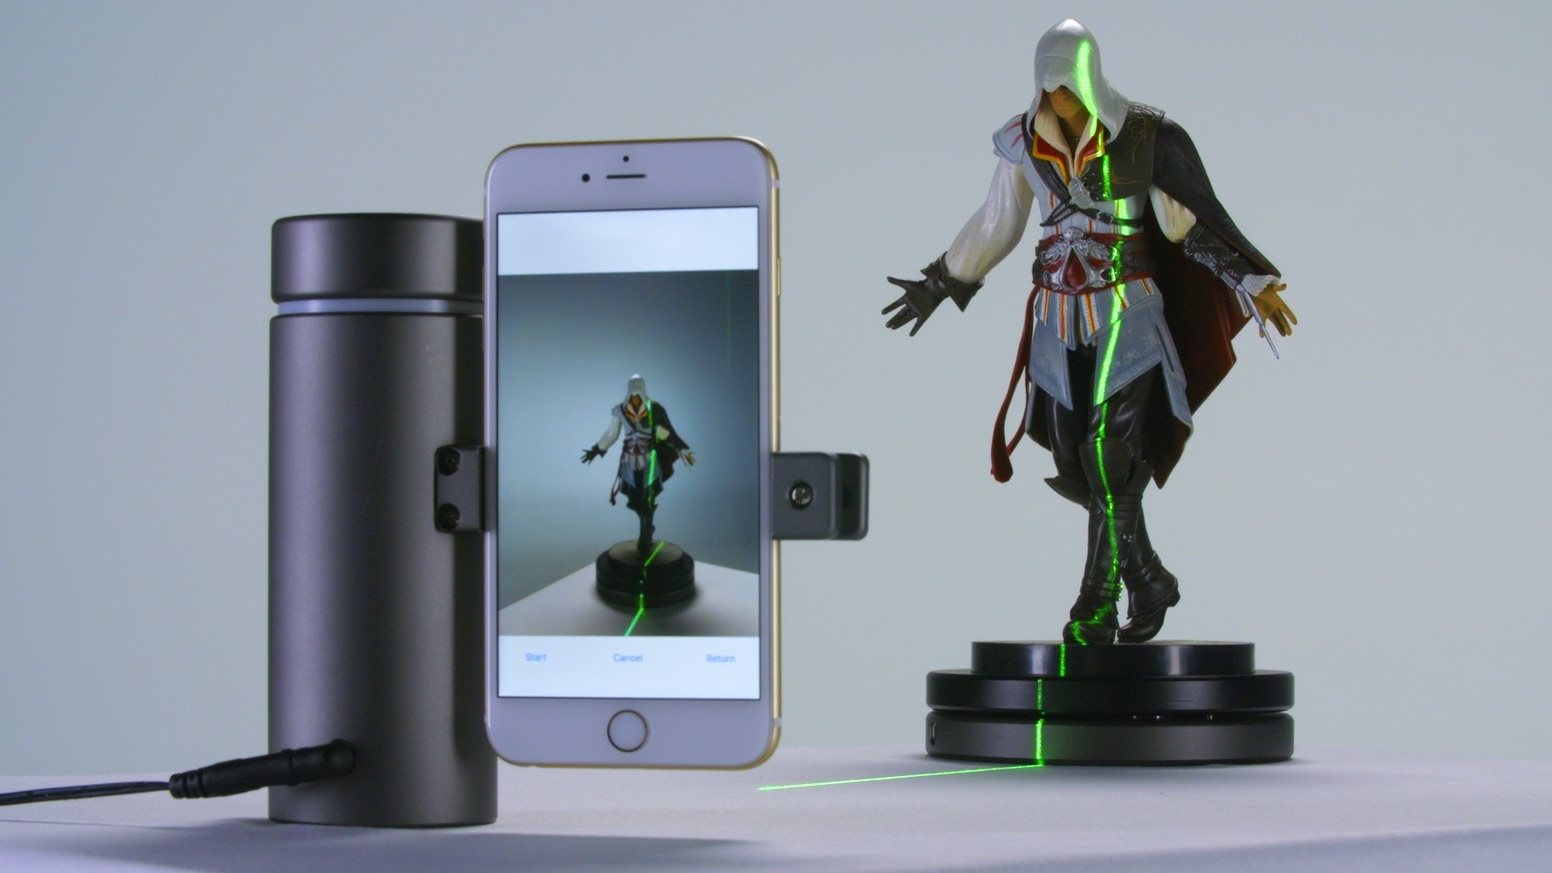 Eora 3d High Precision 3d Scanning On Your Smartphone By Eora 3d